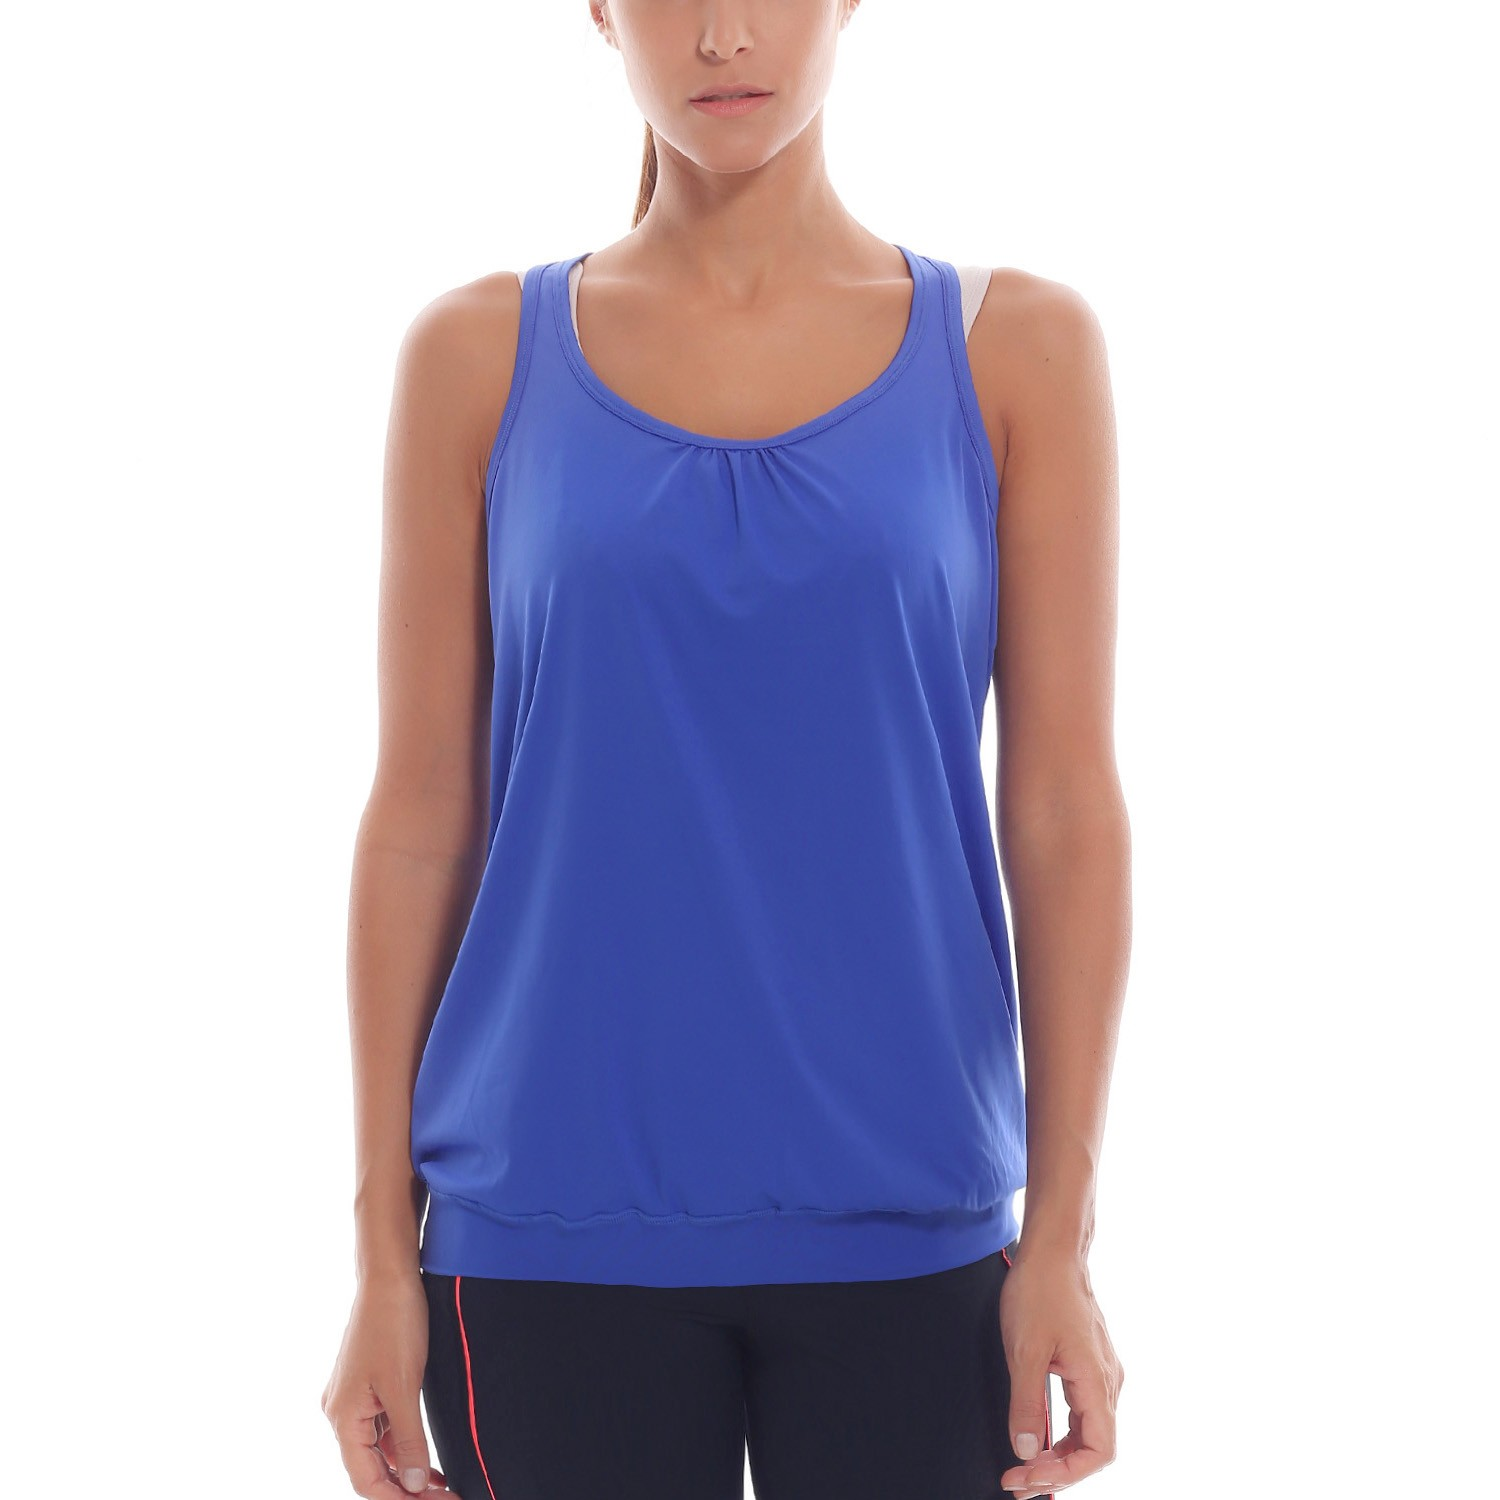 Women's Active Racerback Athletic Sports T-shirt Long Tank ...